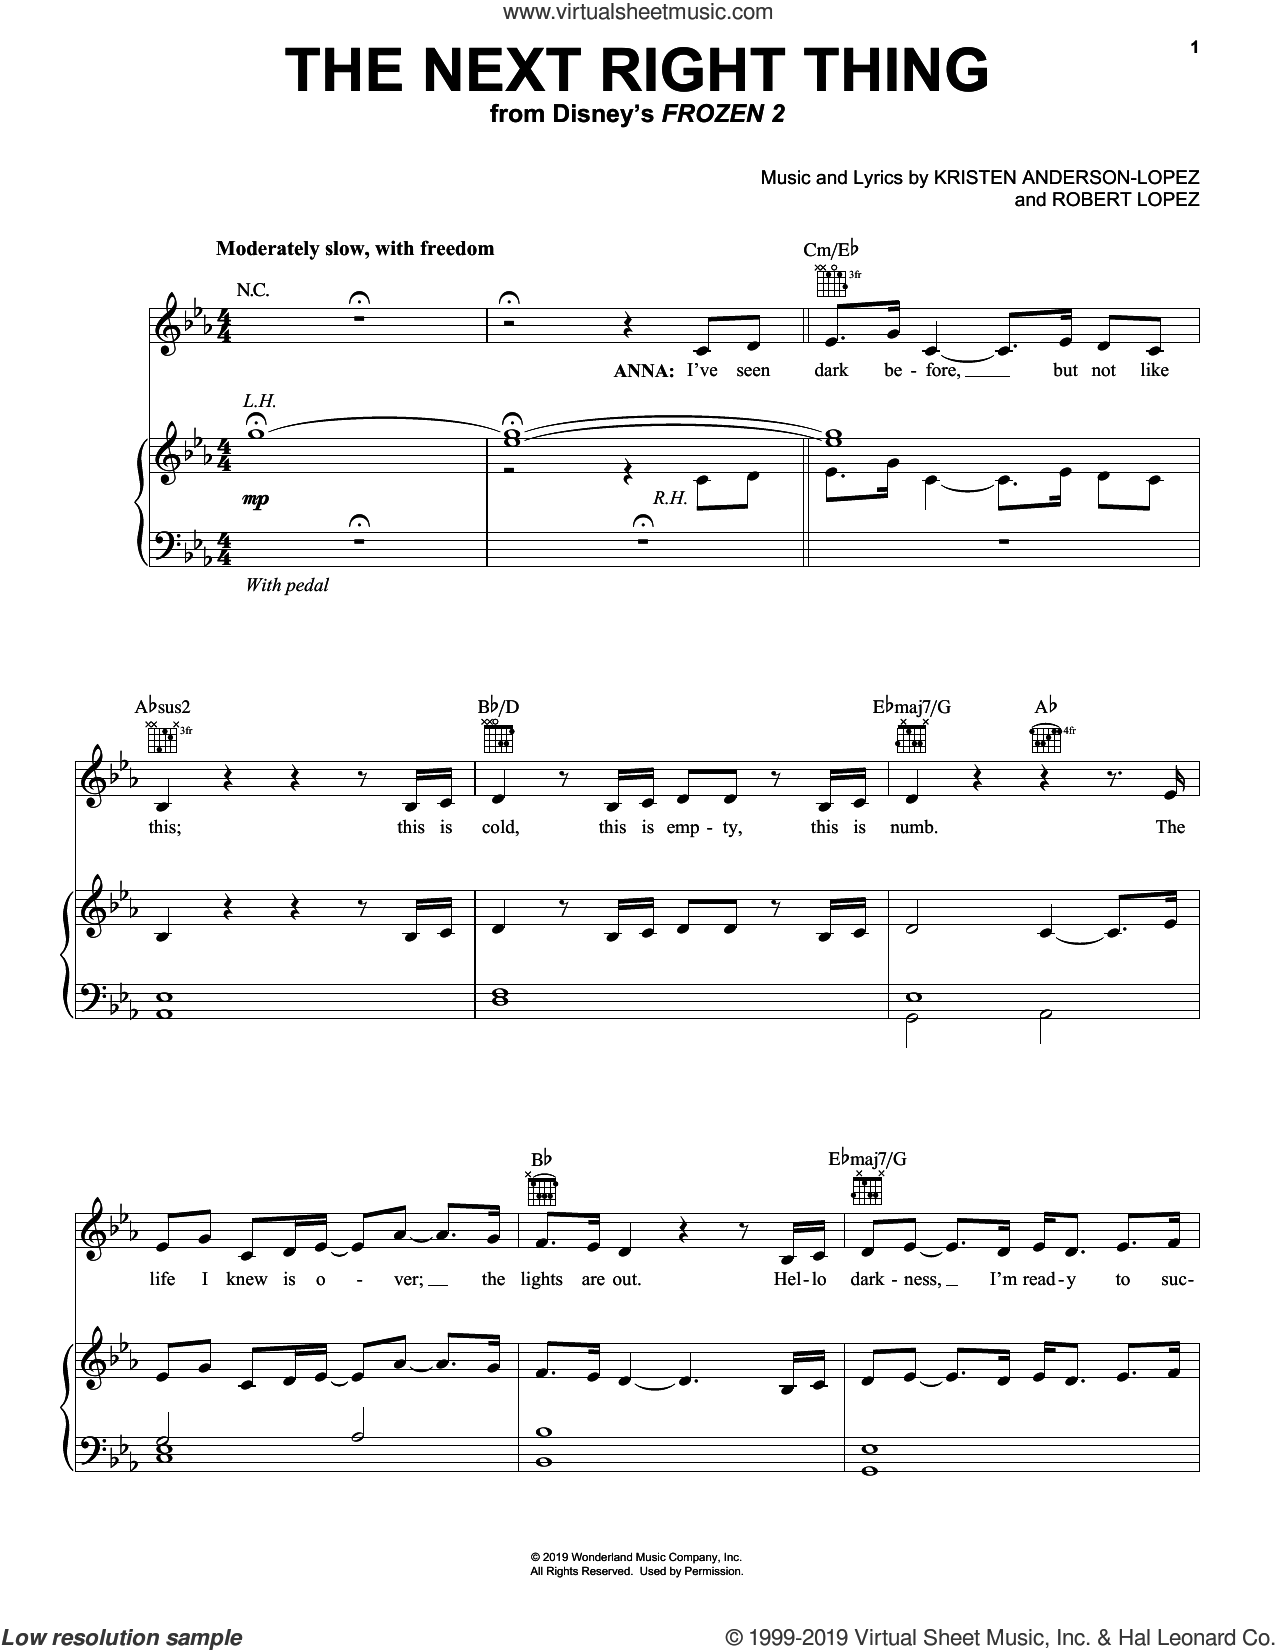 The Next Right Thing (from Disney's Frozen 2) sheet music for voice, piano or guitar by Kristen Bell, Kristen Anderson-Lopez and Robert Lopez, intermediate skill level